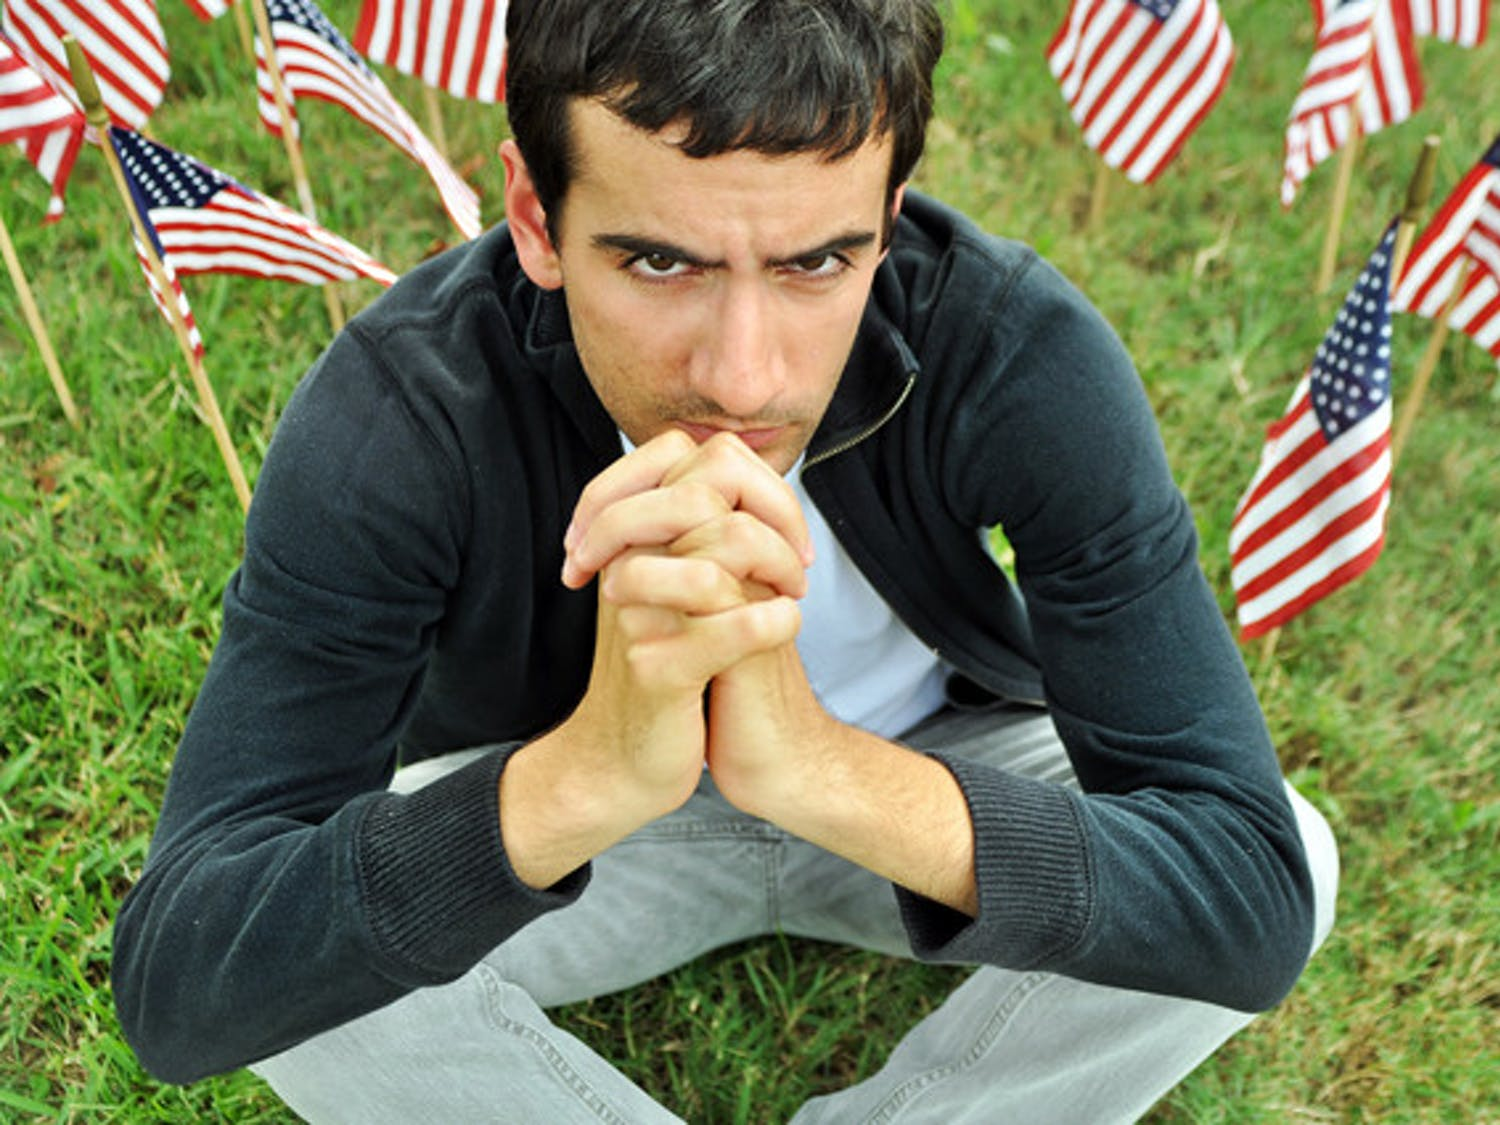 UF English senior Thomas Panevino, 21, who lived one block from the World Trade Center at the time of the 9/11 attacks, sits among the flags of the 9/11: Never Forget Project on the Reitz Union North Lawn.